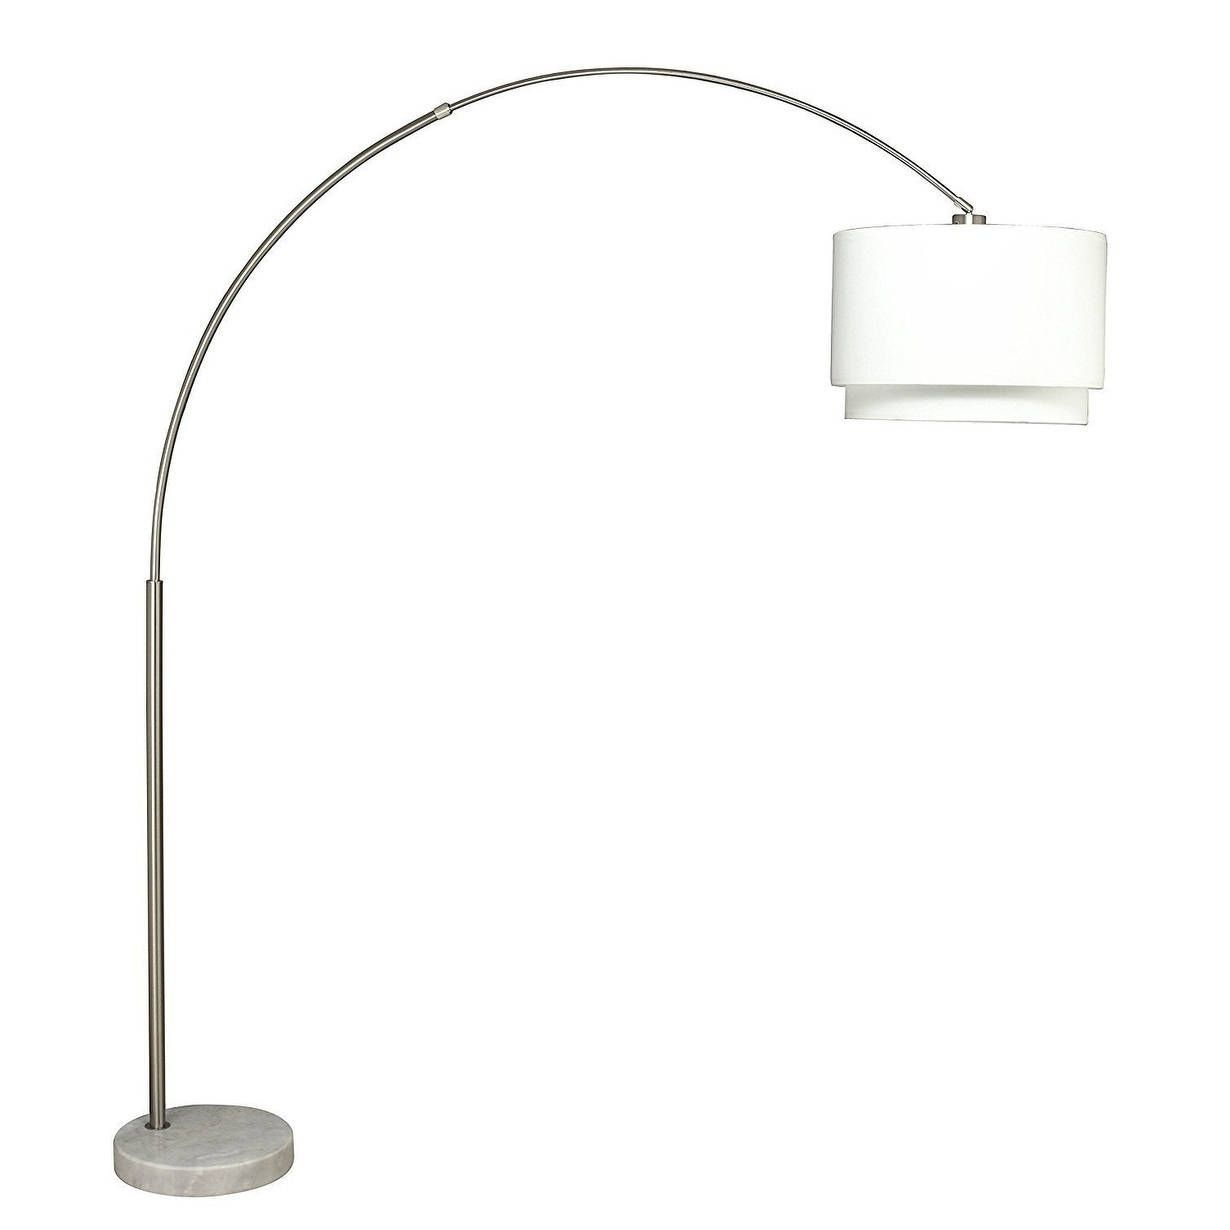 Q-Max Steel Double Shade Adjustable Arching Floor Lamp with Marble Base,  White